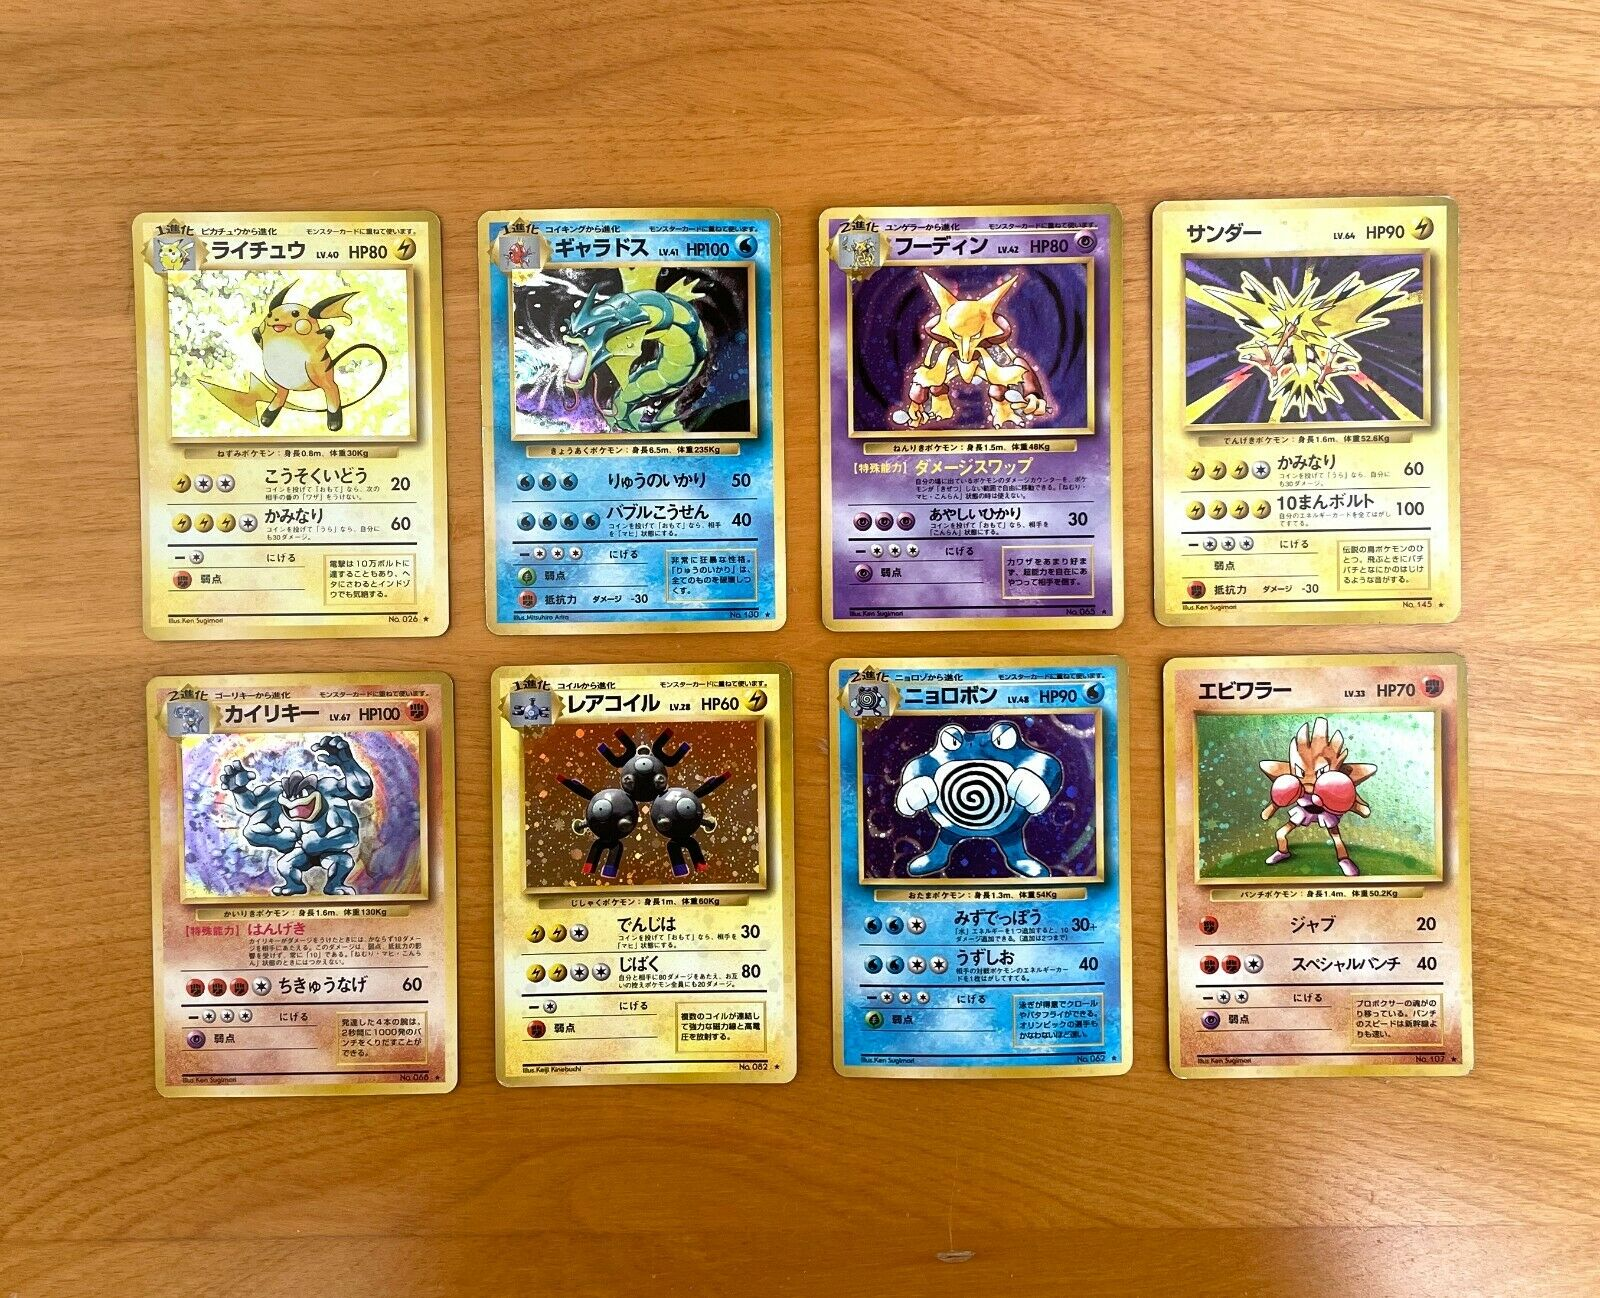 Japanese Pokemon Alakazam Raichu Gyarados Holo Base Set Vintage 8 Card Lot Без бренда